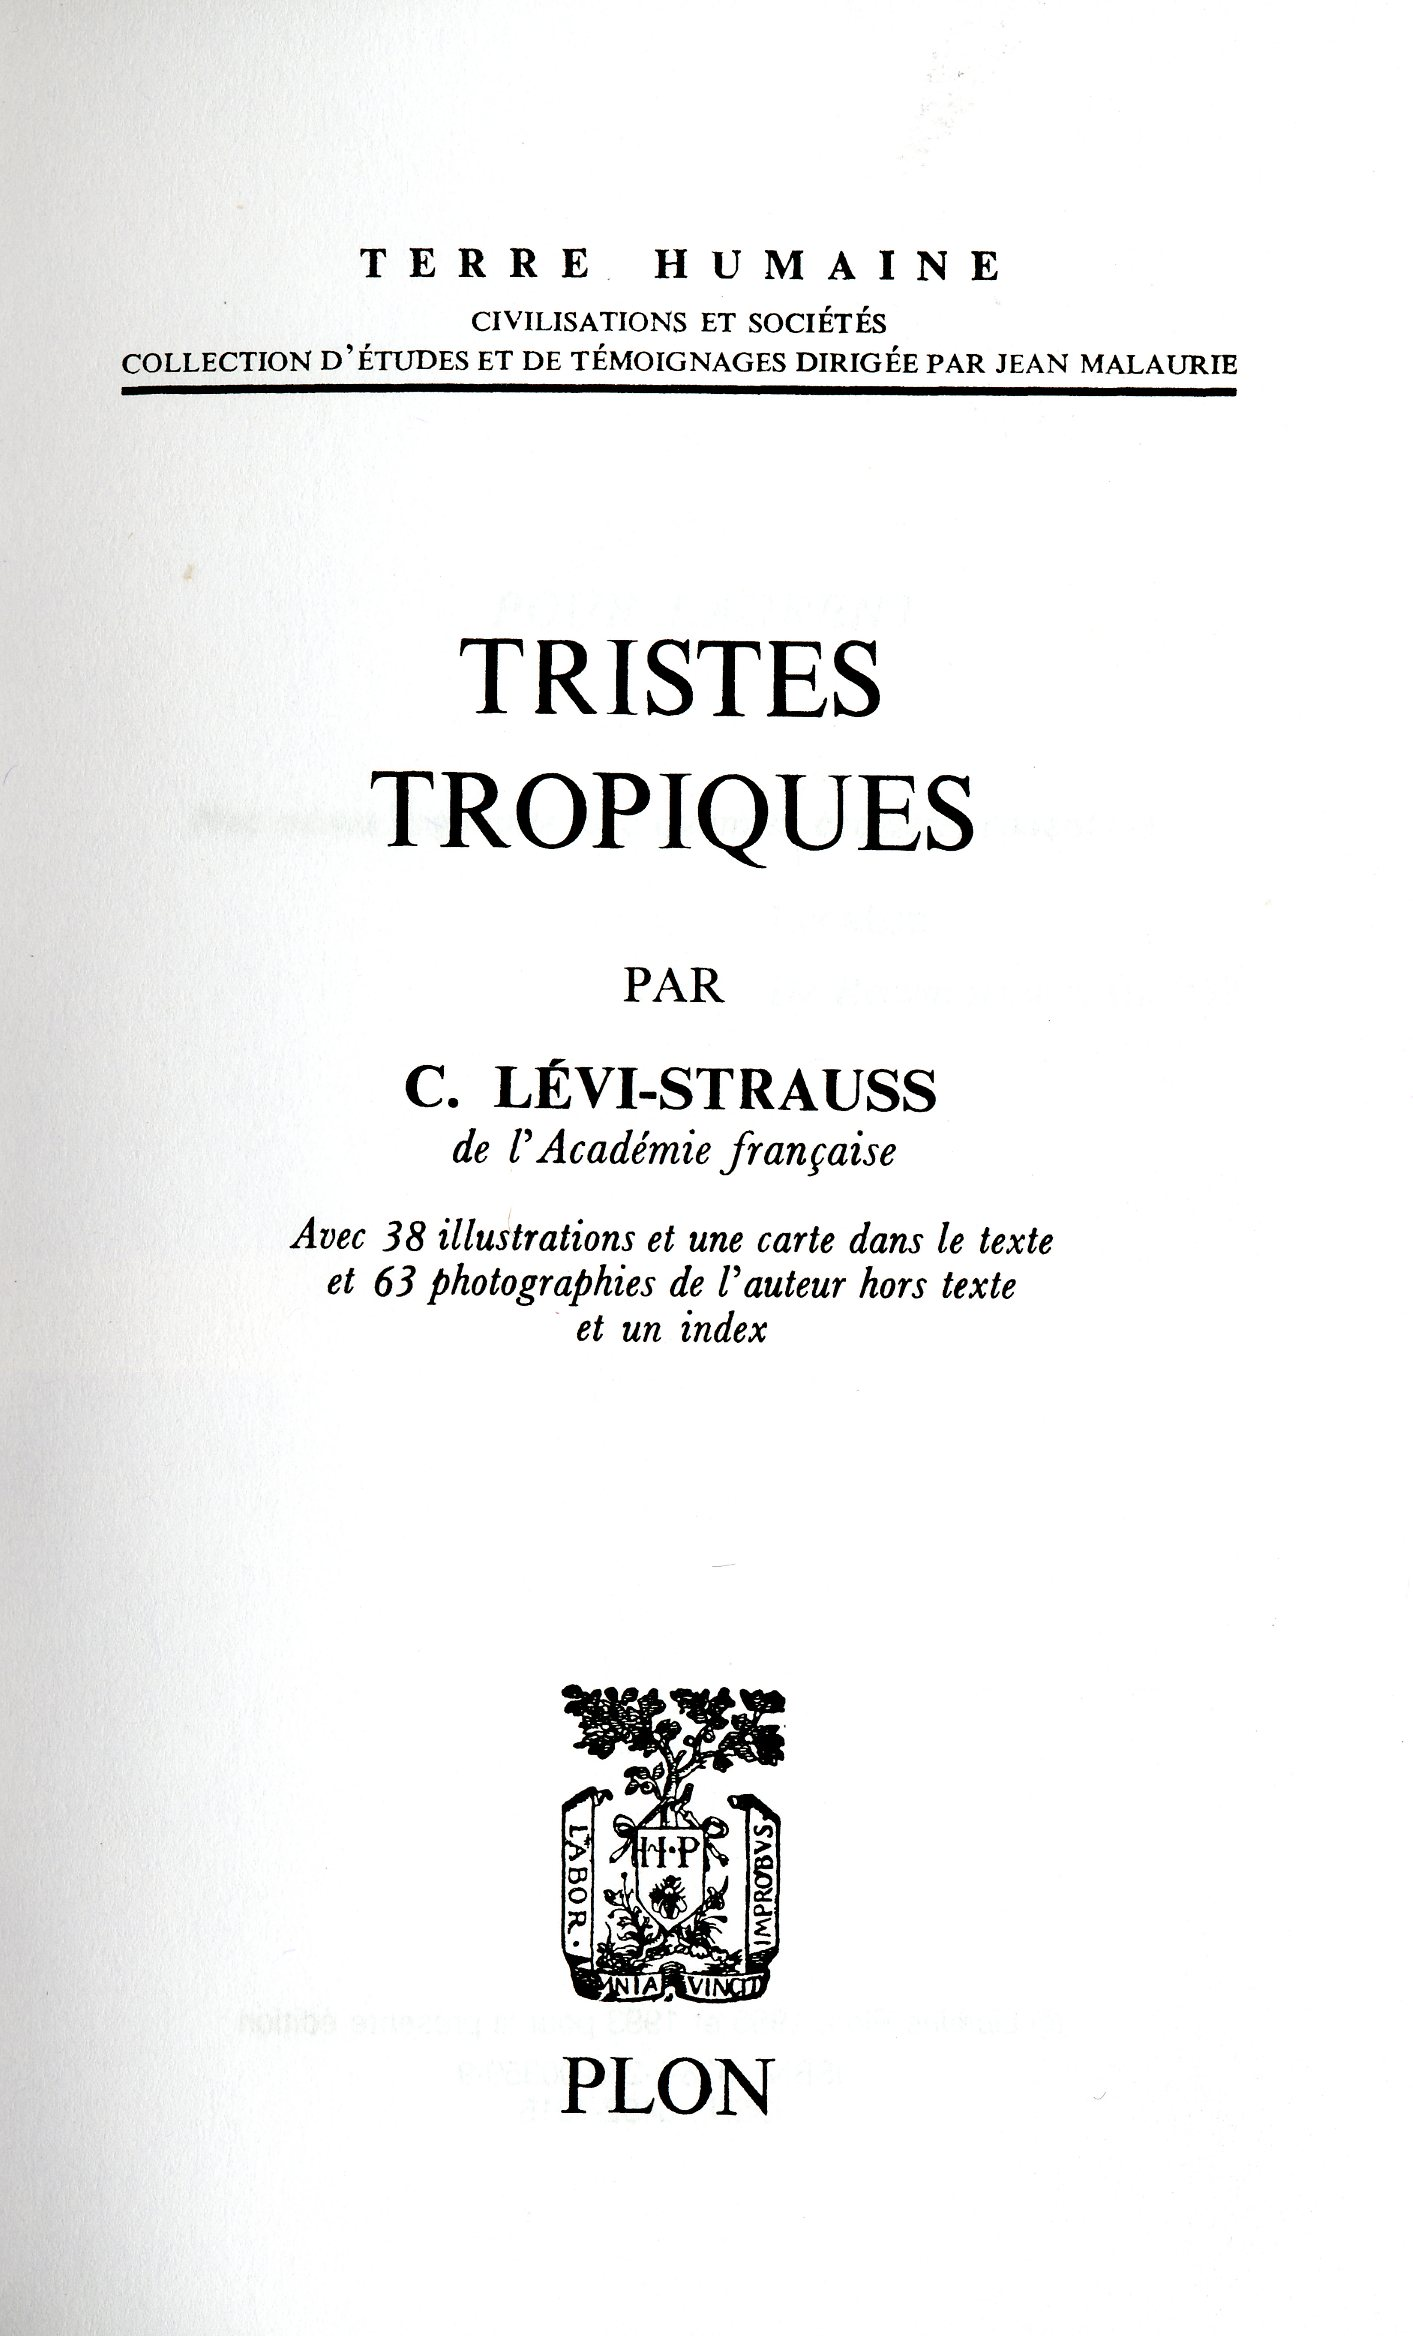 tristes tropiques by claude levi strauss essay I should like to point out that although i have written of the attempt of lévi-strauss to return anthropology to its philosophical roots, i by no means wish to suggest that claude lévi-strauss is a philosopher first and an anthropologist second, a position imputed to him by many (pocock, 1968: 27 netl, 1966: 880.